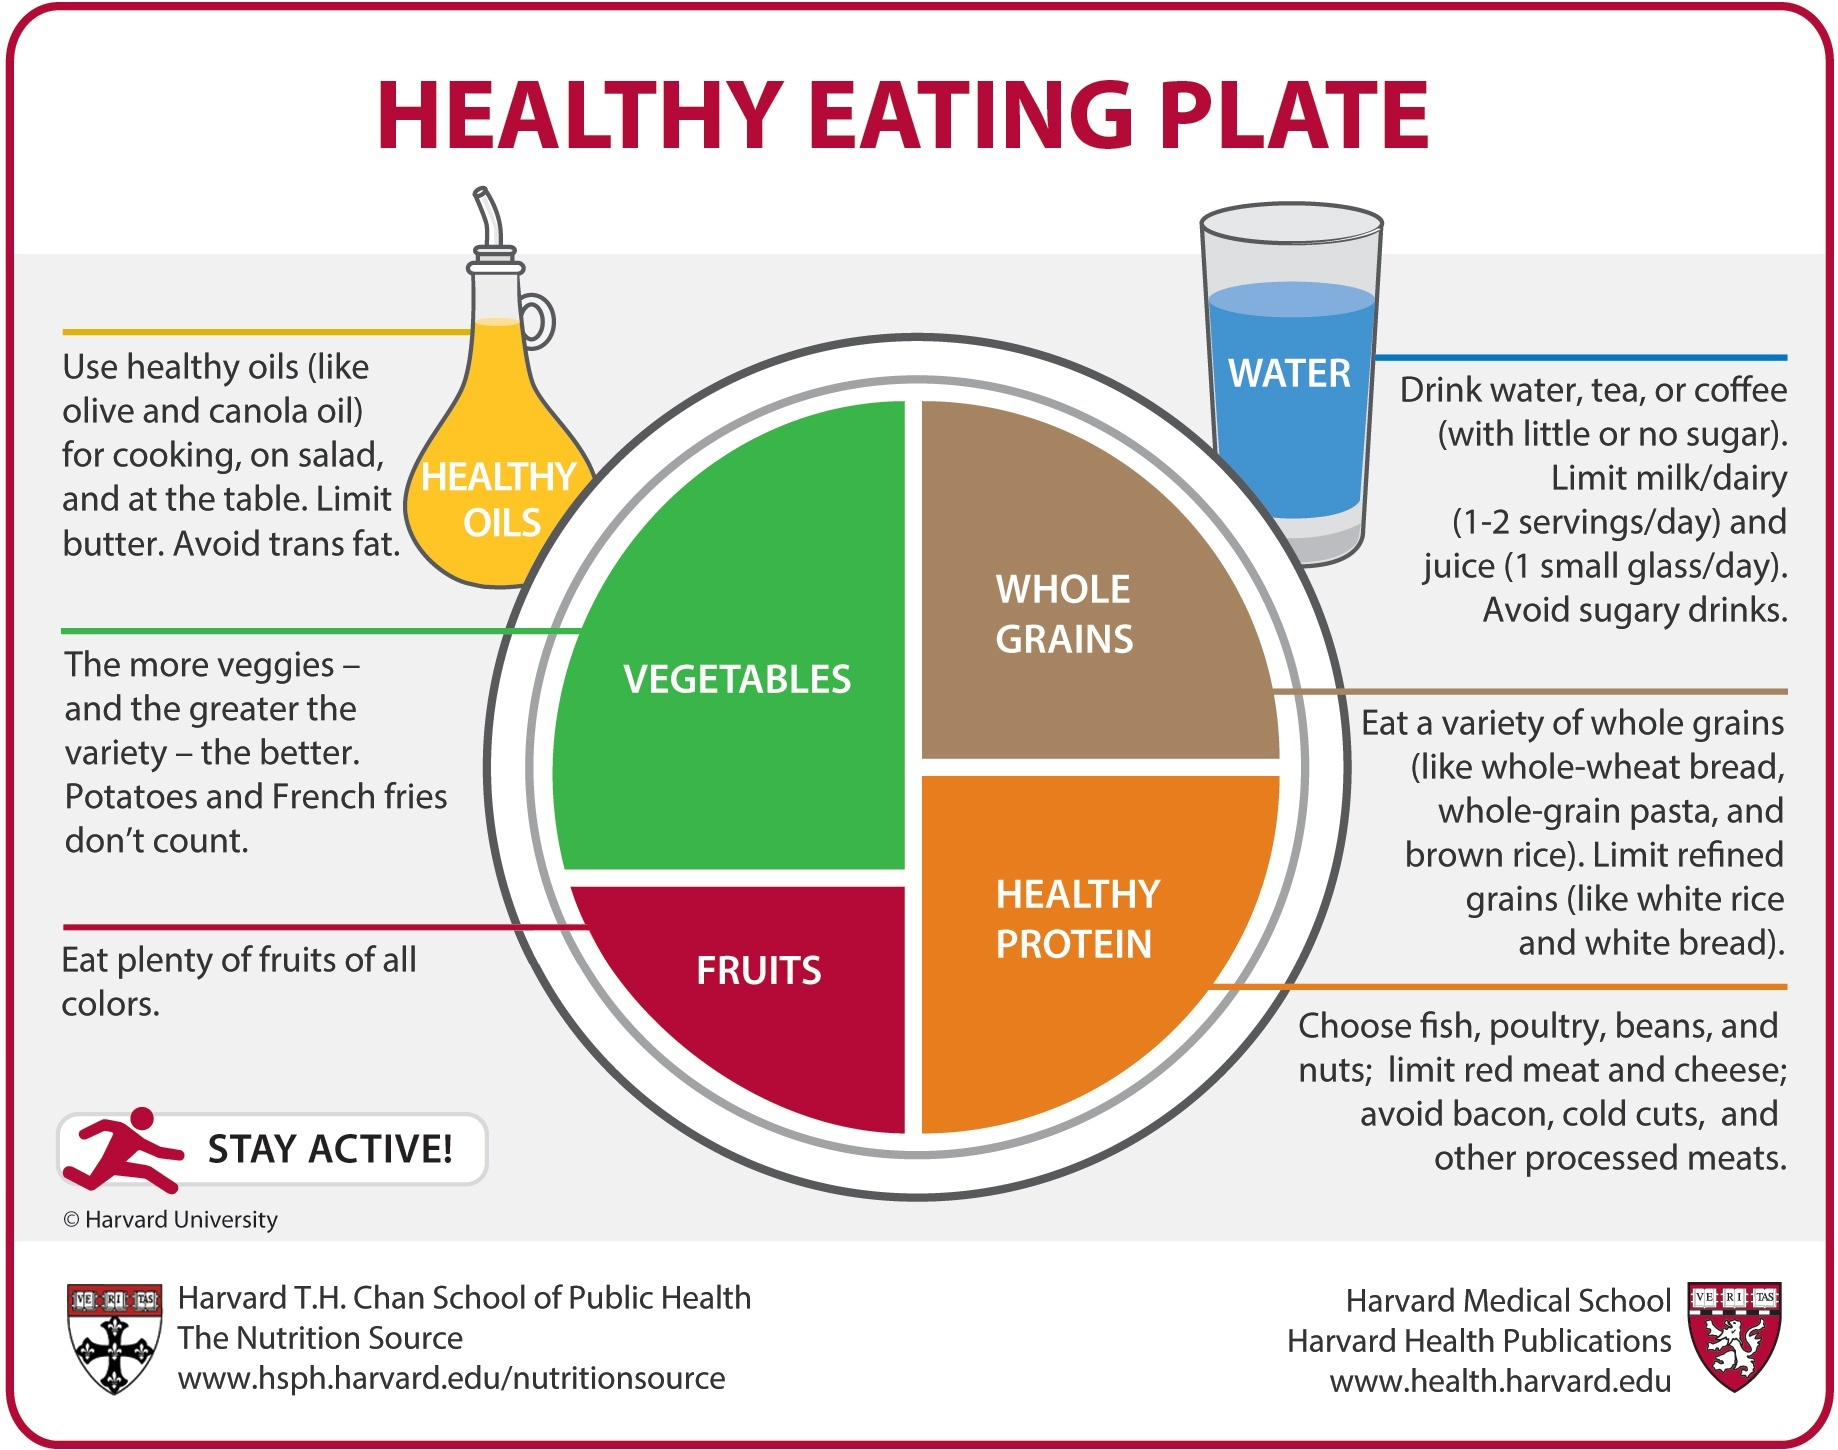 Healthy Eating Plate Pyramid